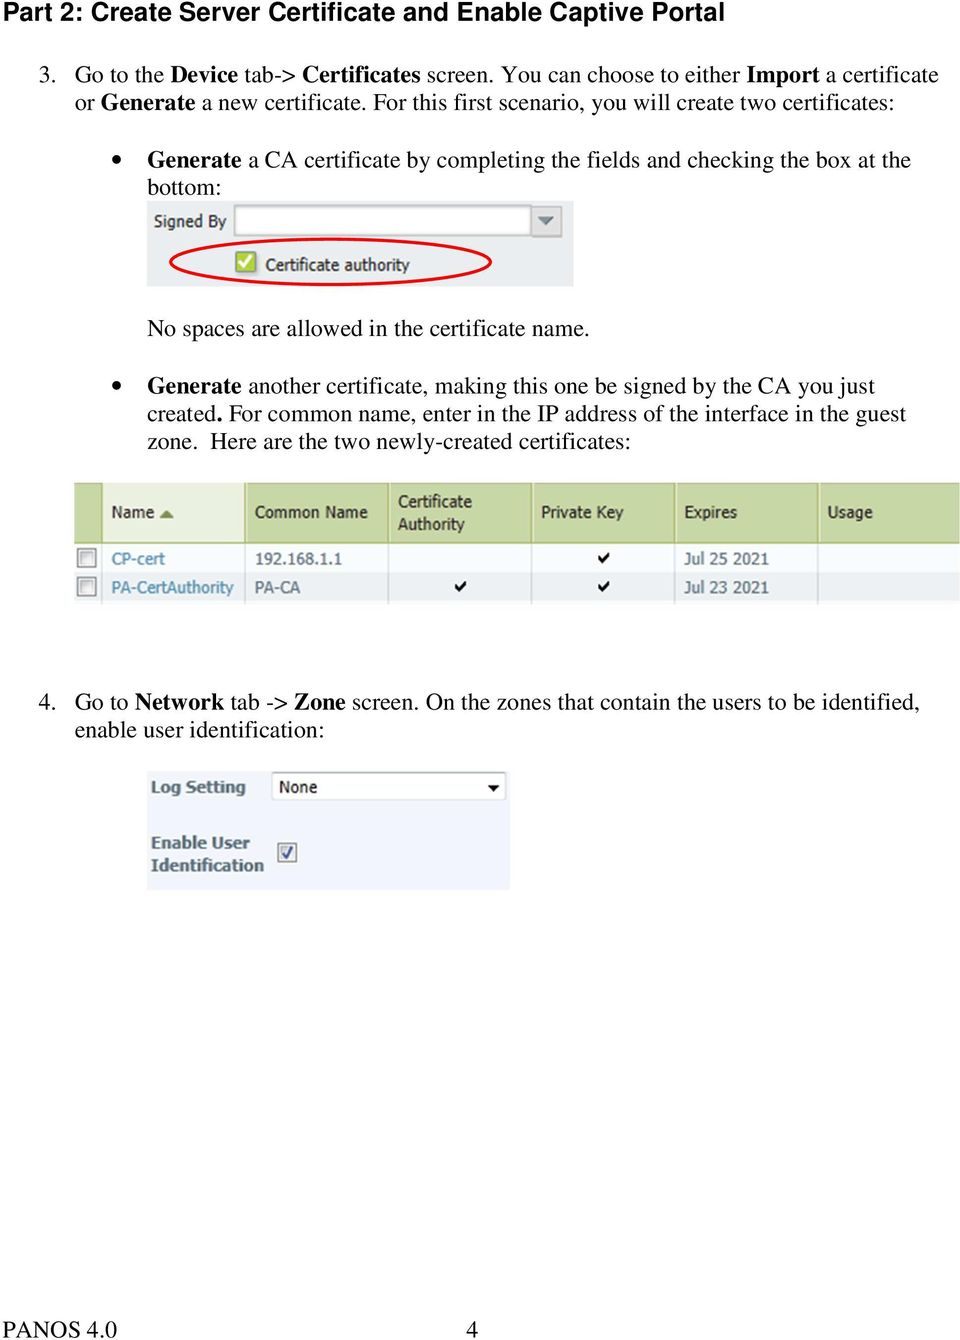 How to Configure Captive Portal - PDF